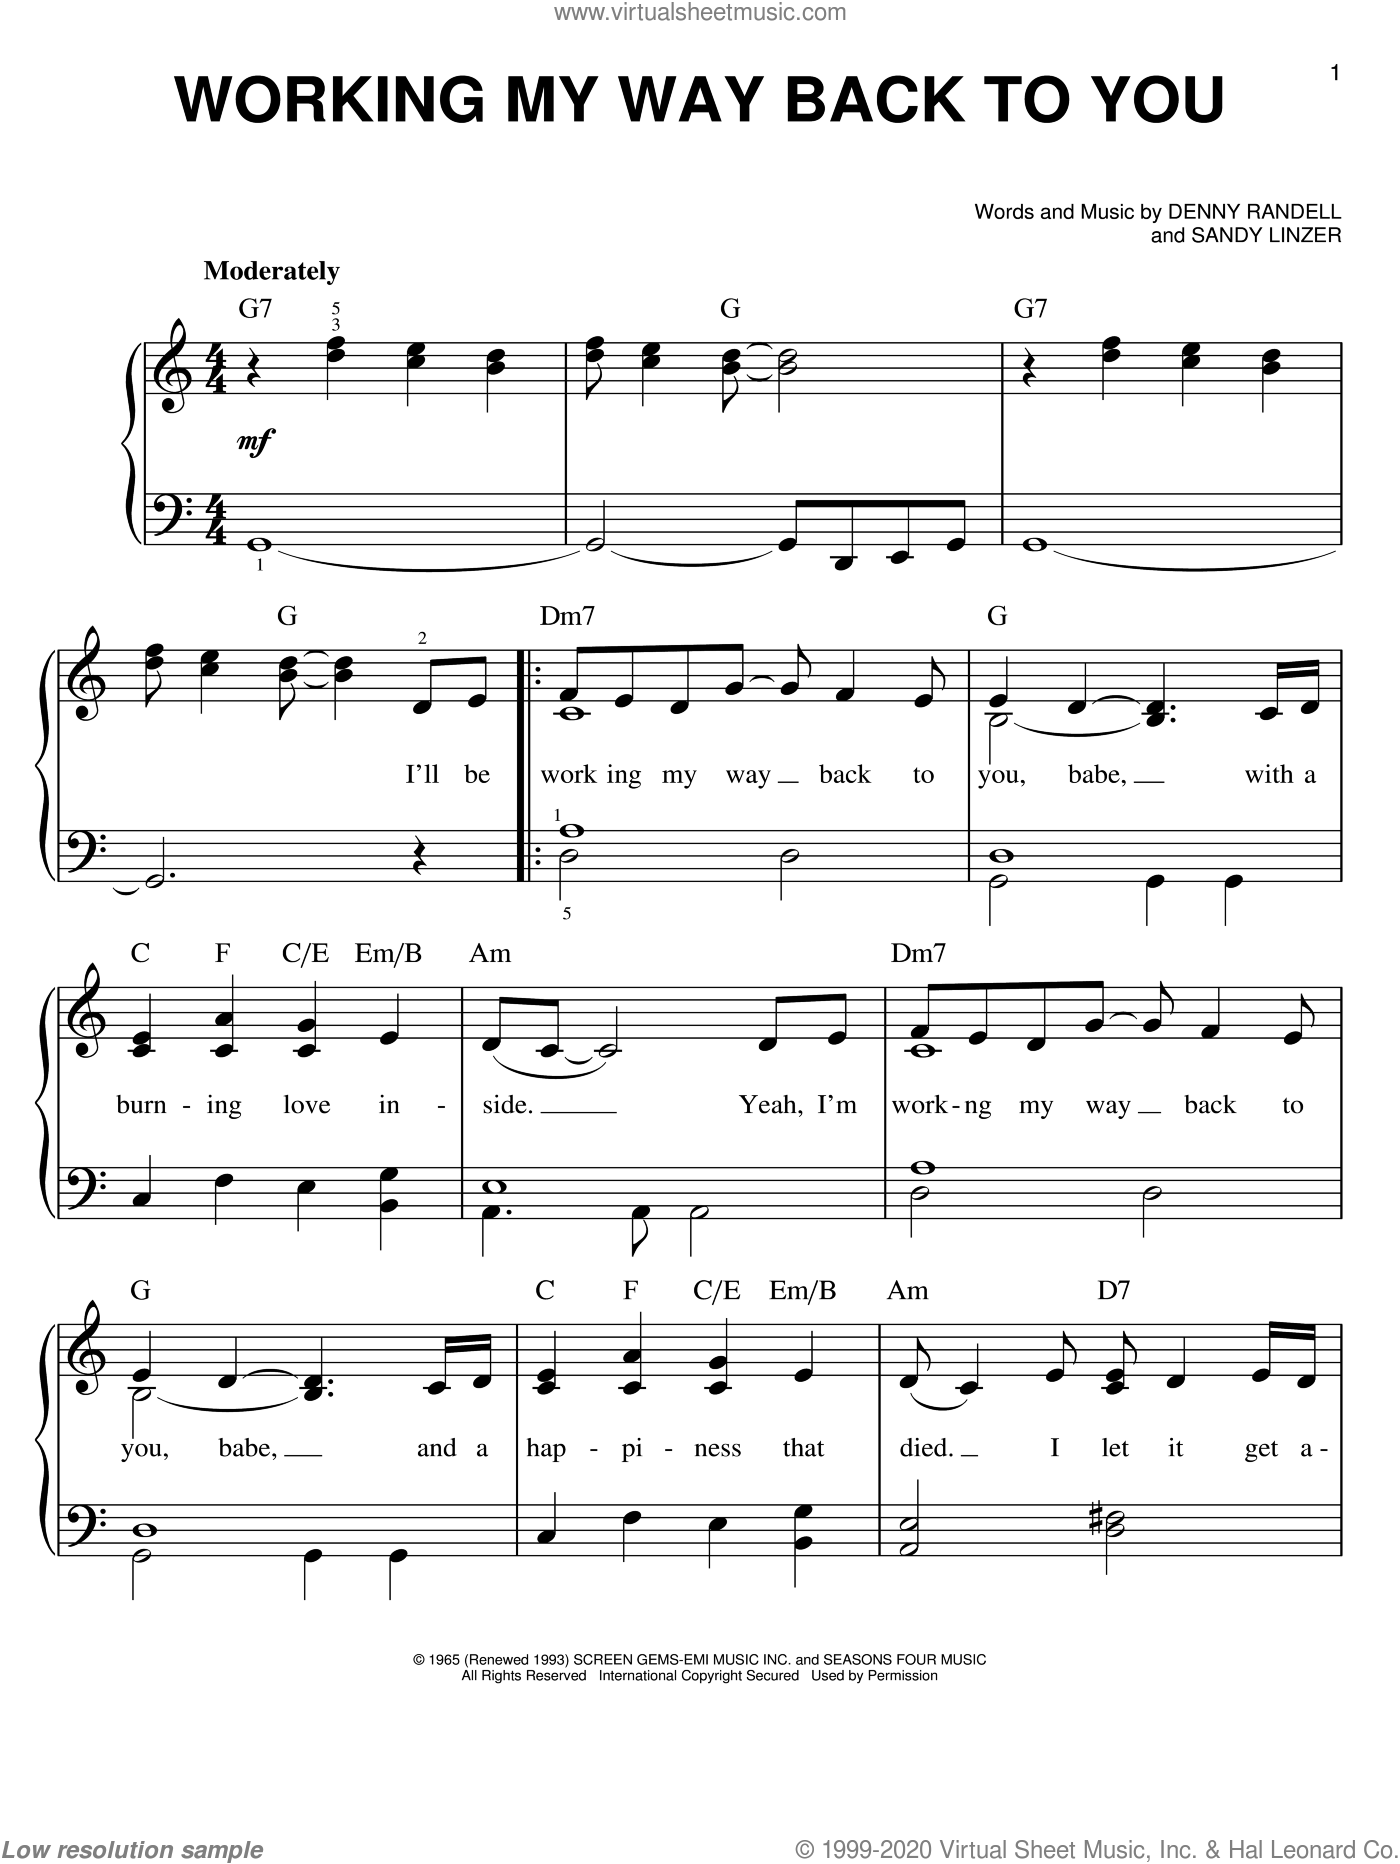 Working My Way Back To You sheet music for piano solo (chords) by Sandy Linzer